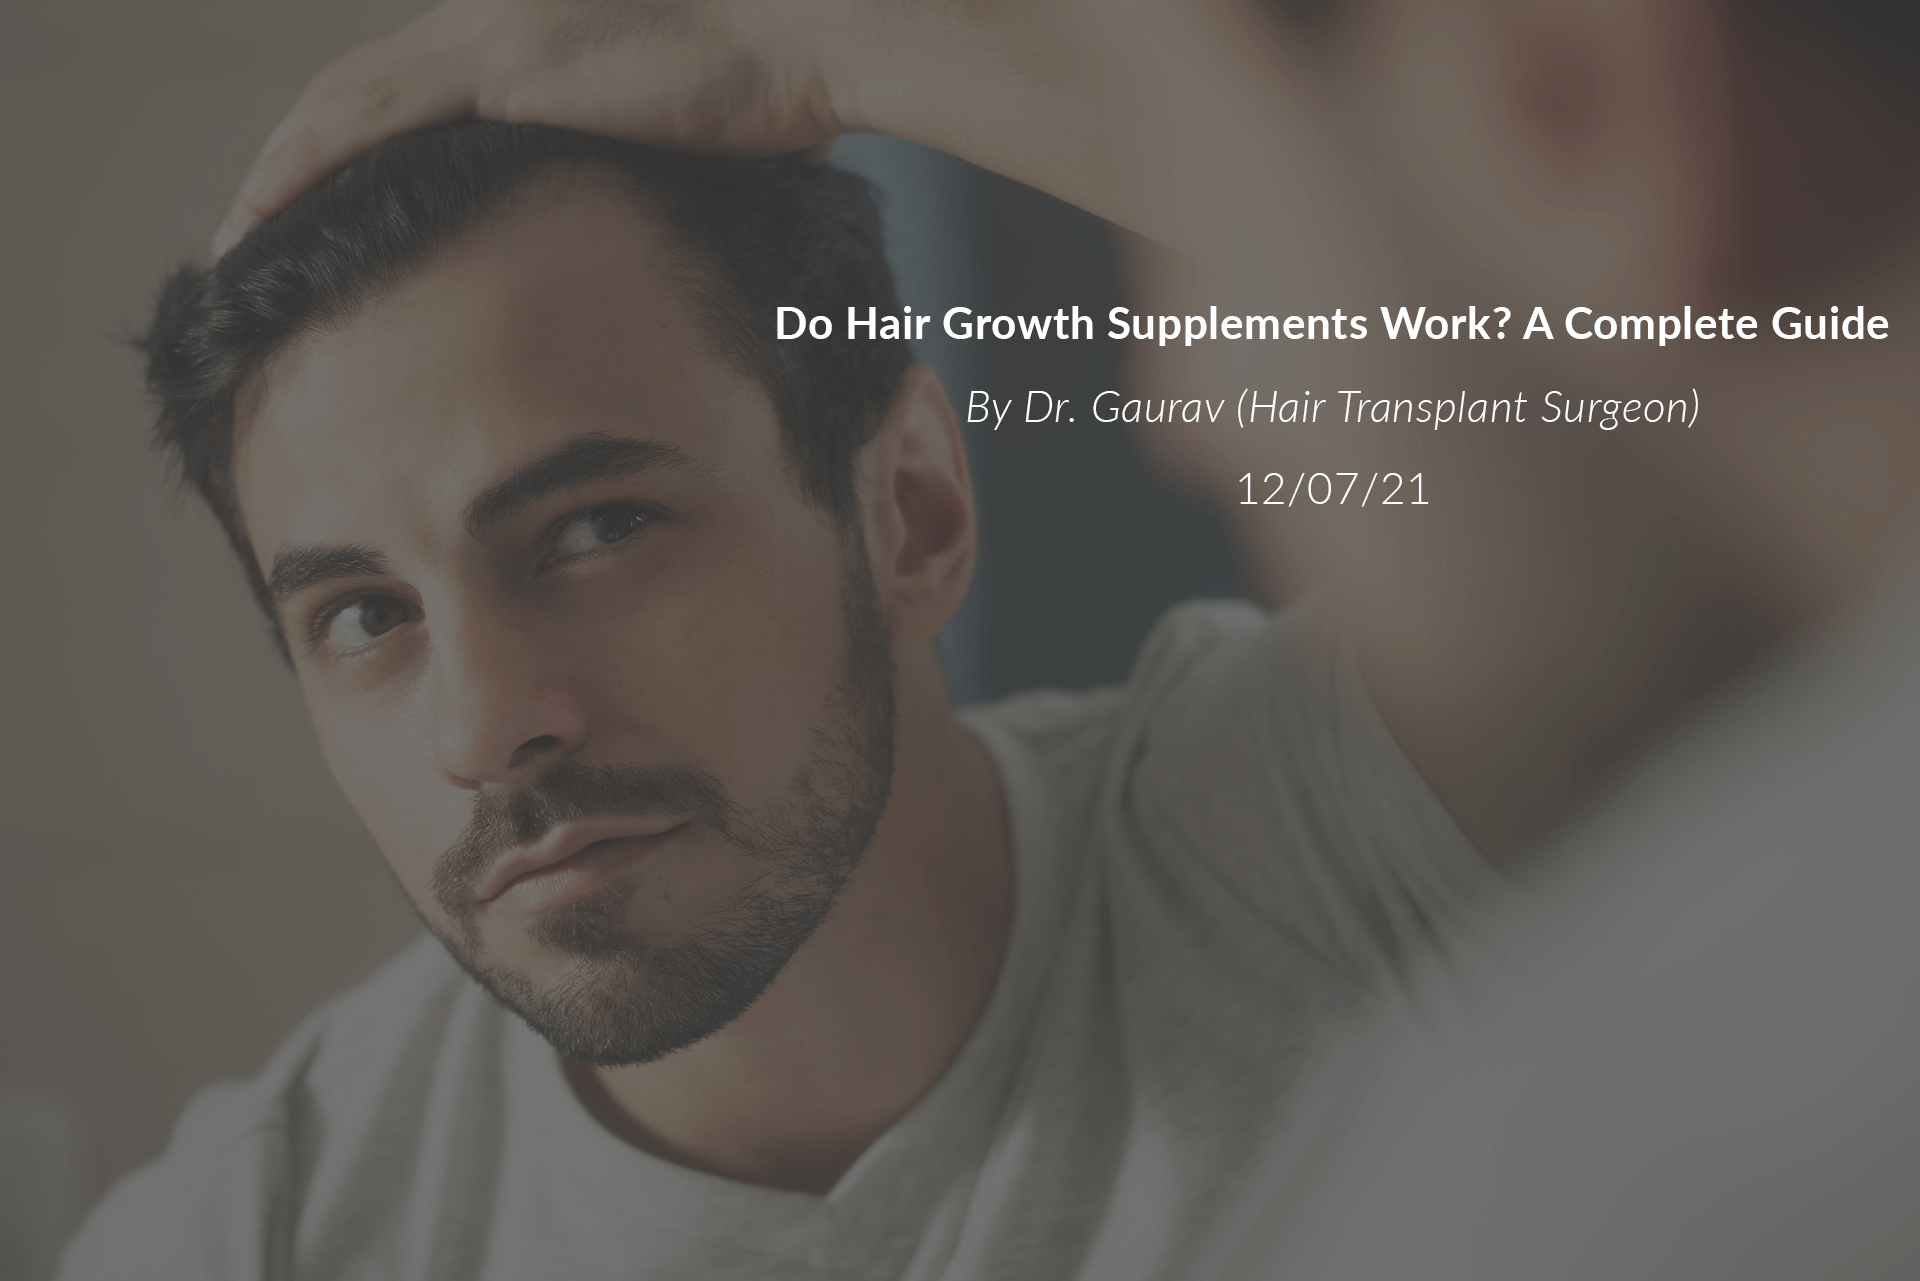 Do Hair Growth Supplements Work? A Complete Guide